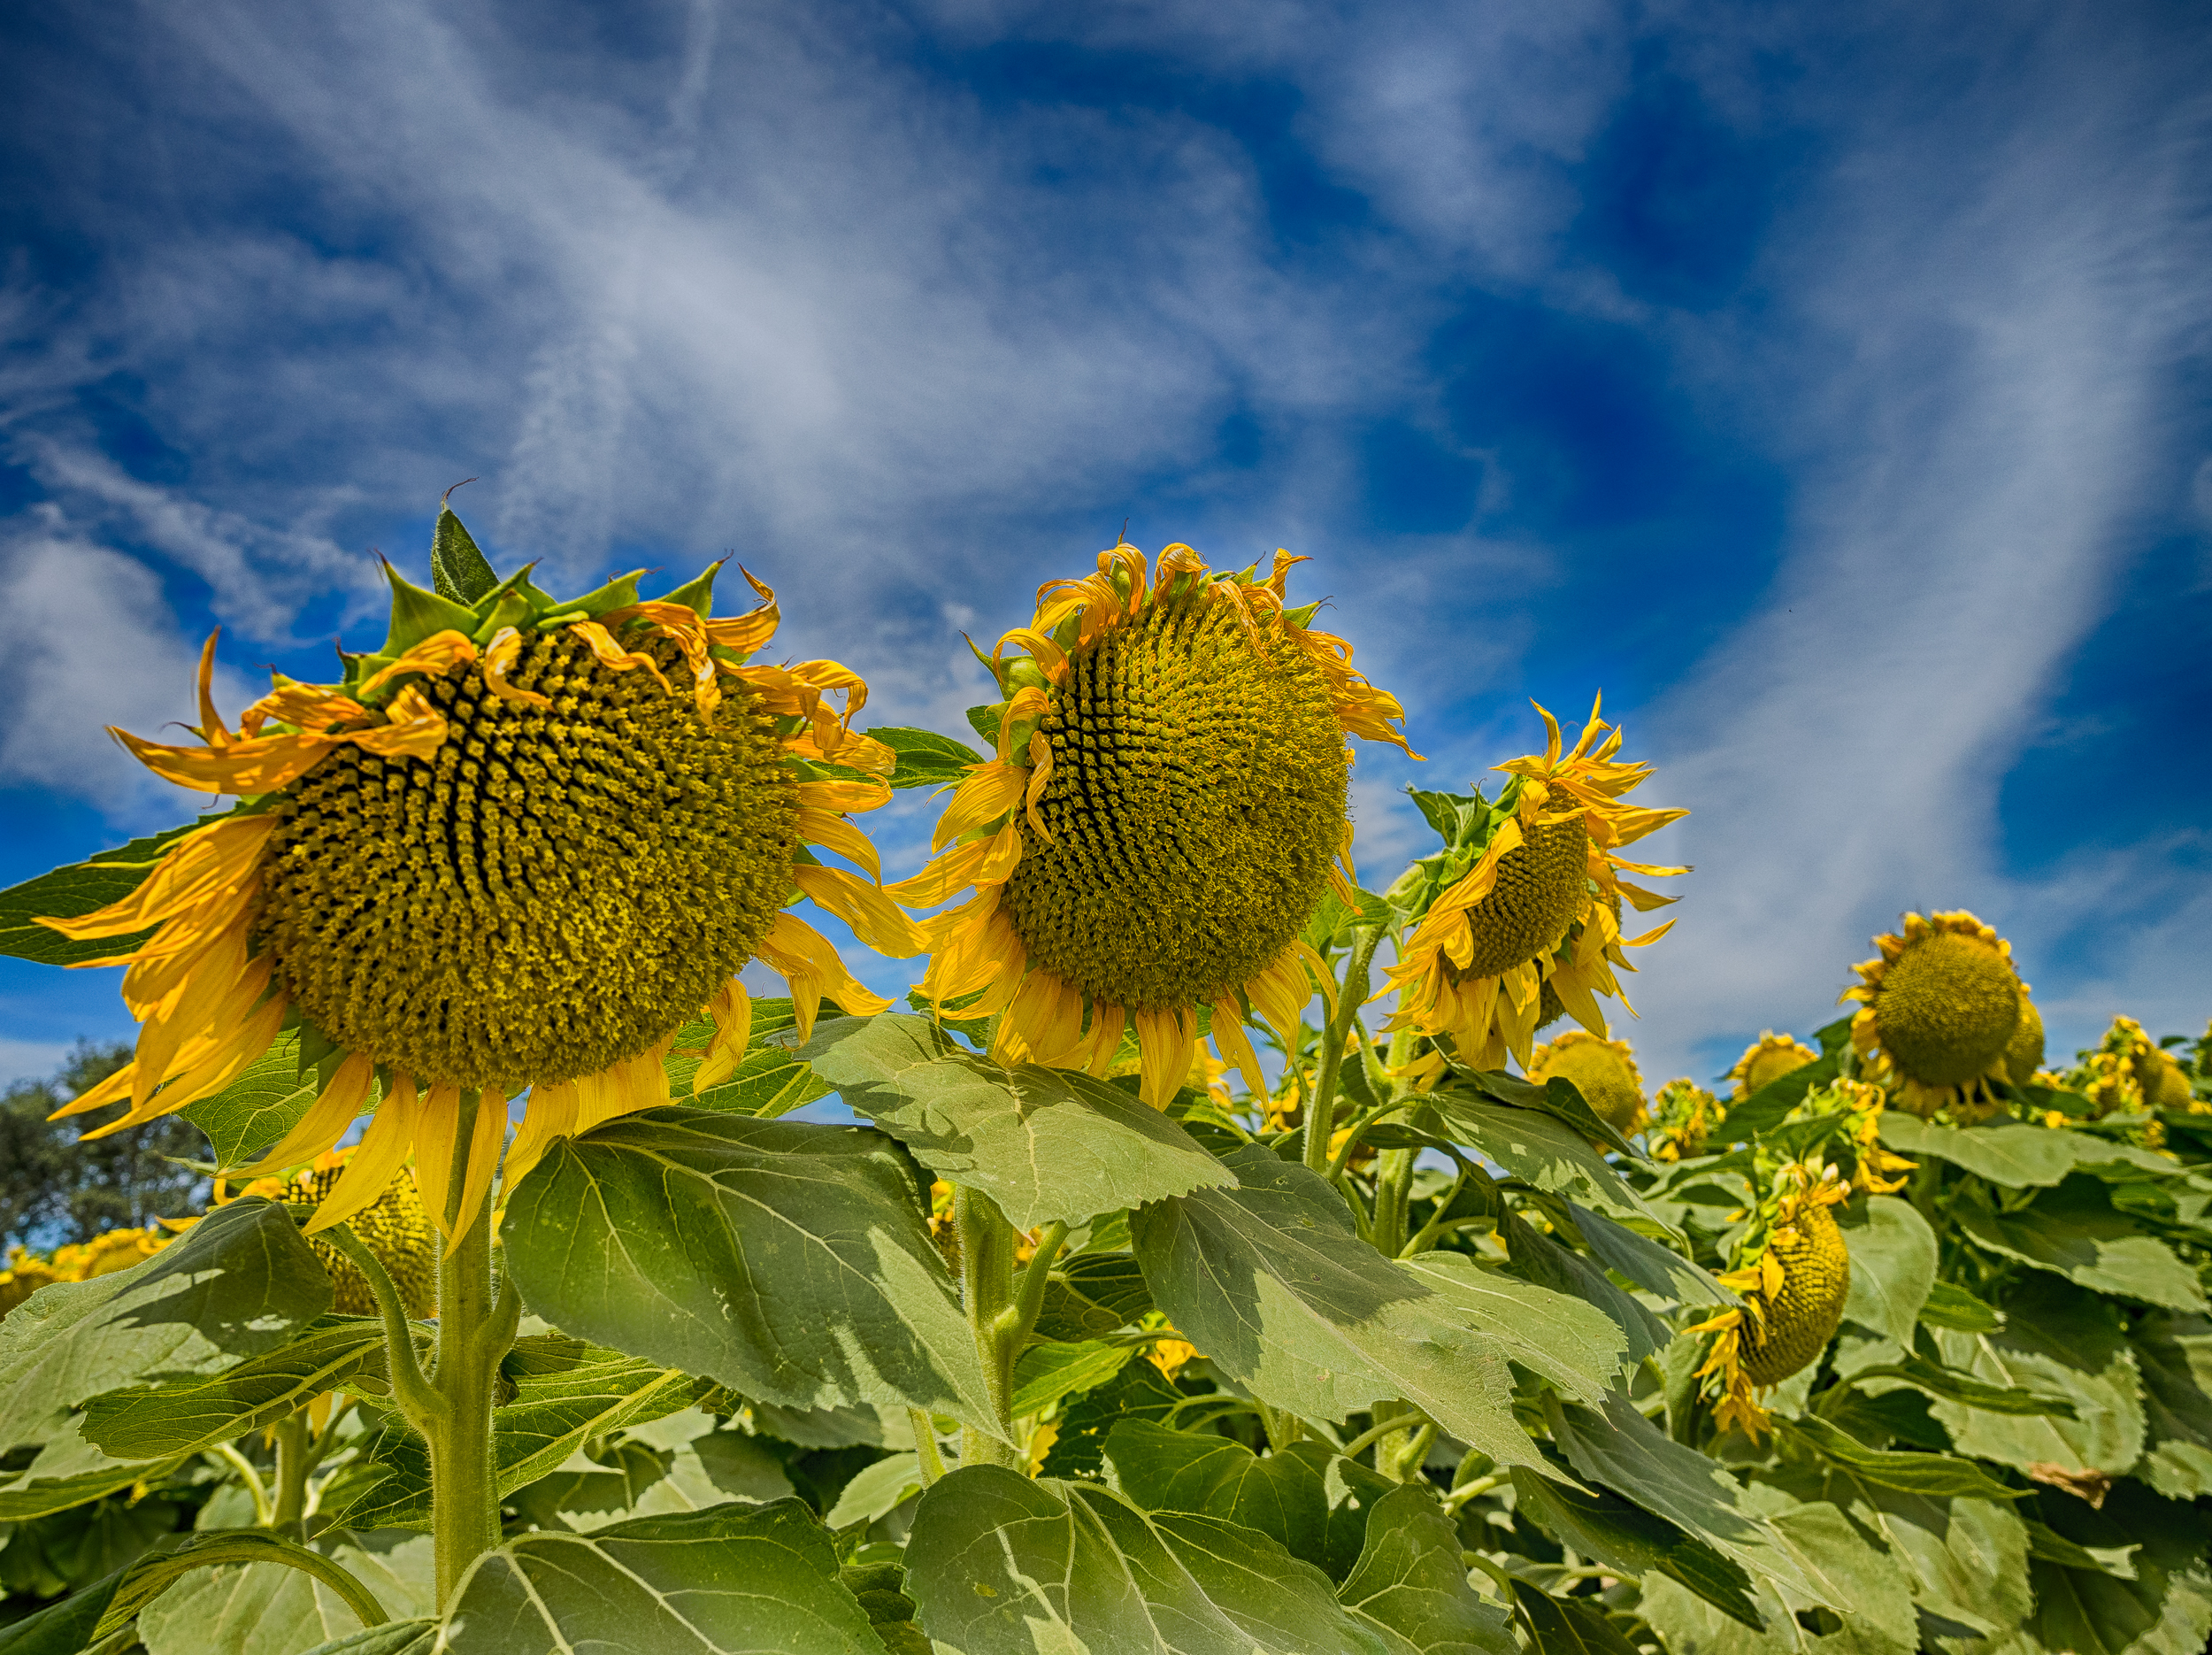 Sunflowers-24_HDR.jpg